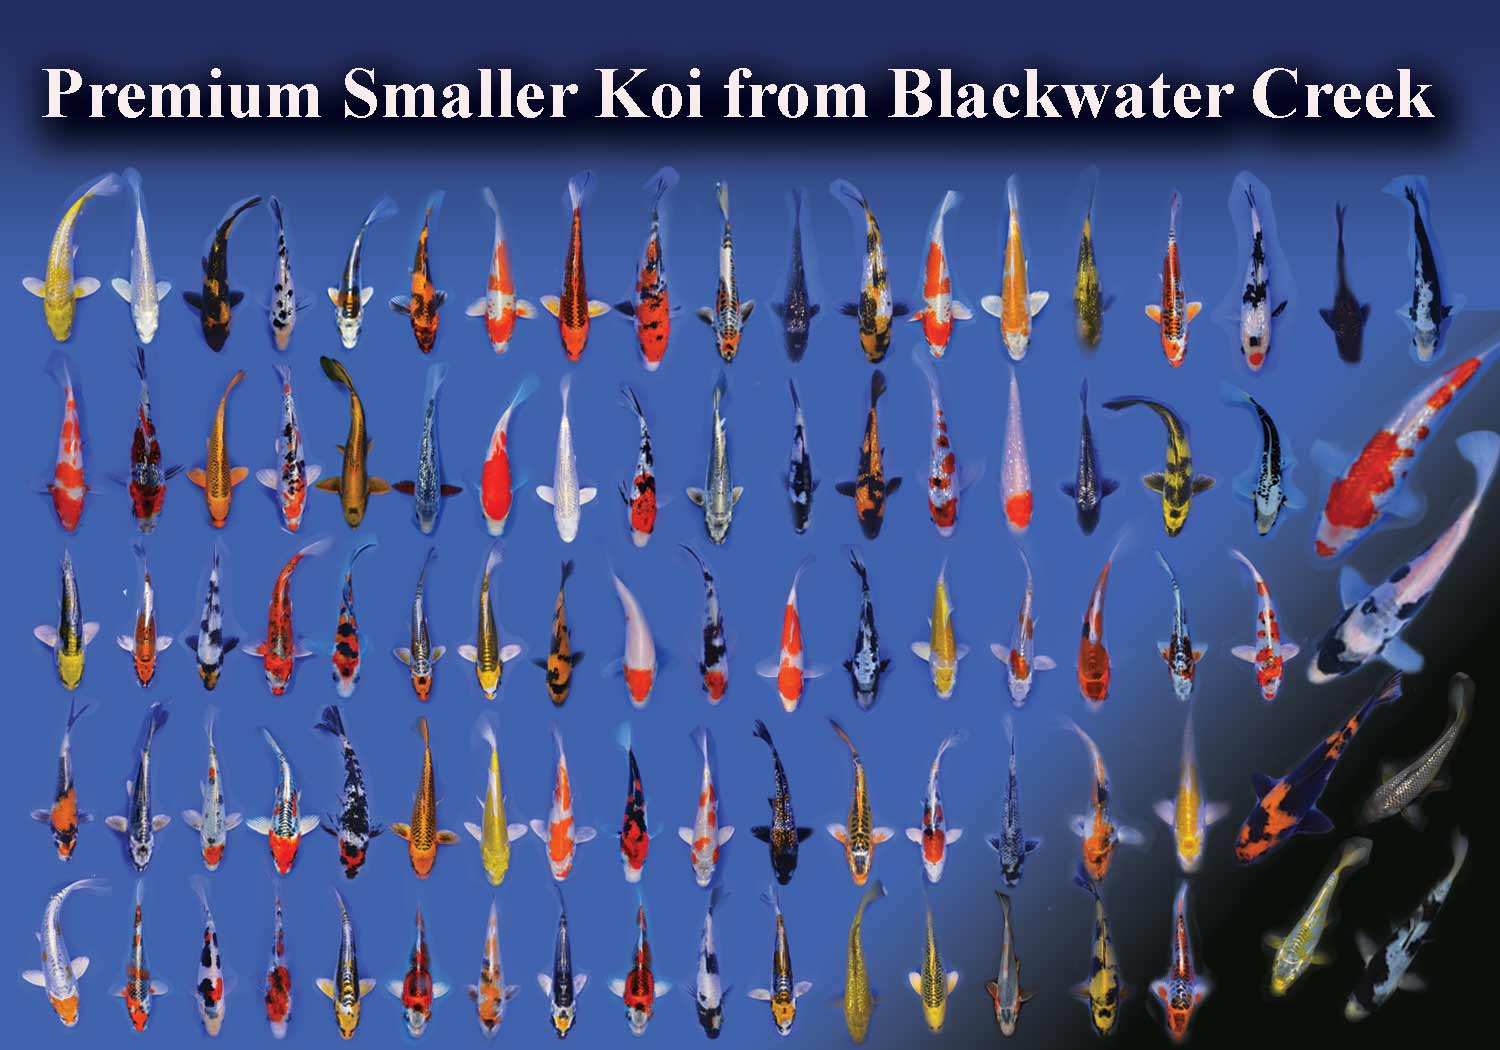 Pin koi varieties pictures on pinterest for Koi variety chart